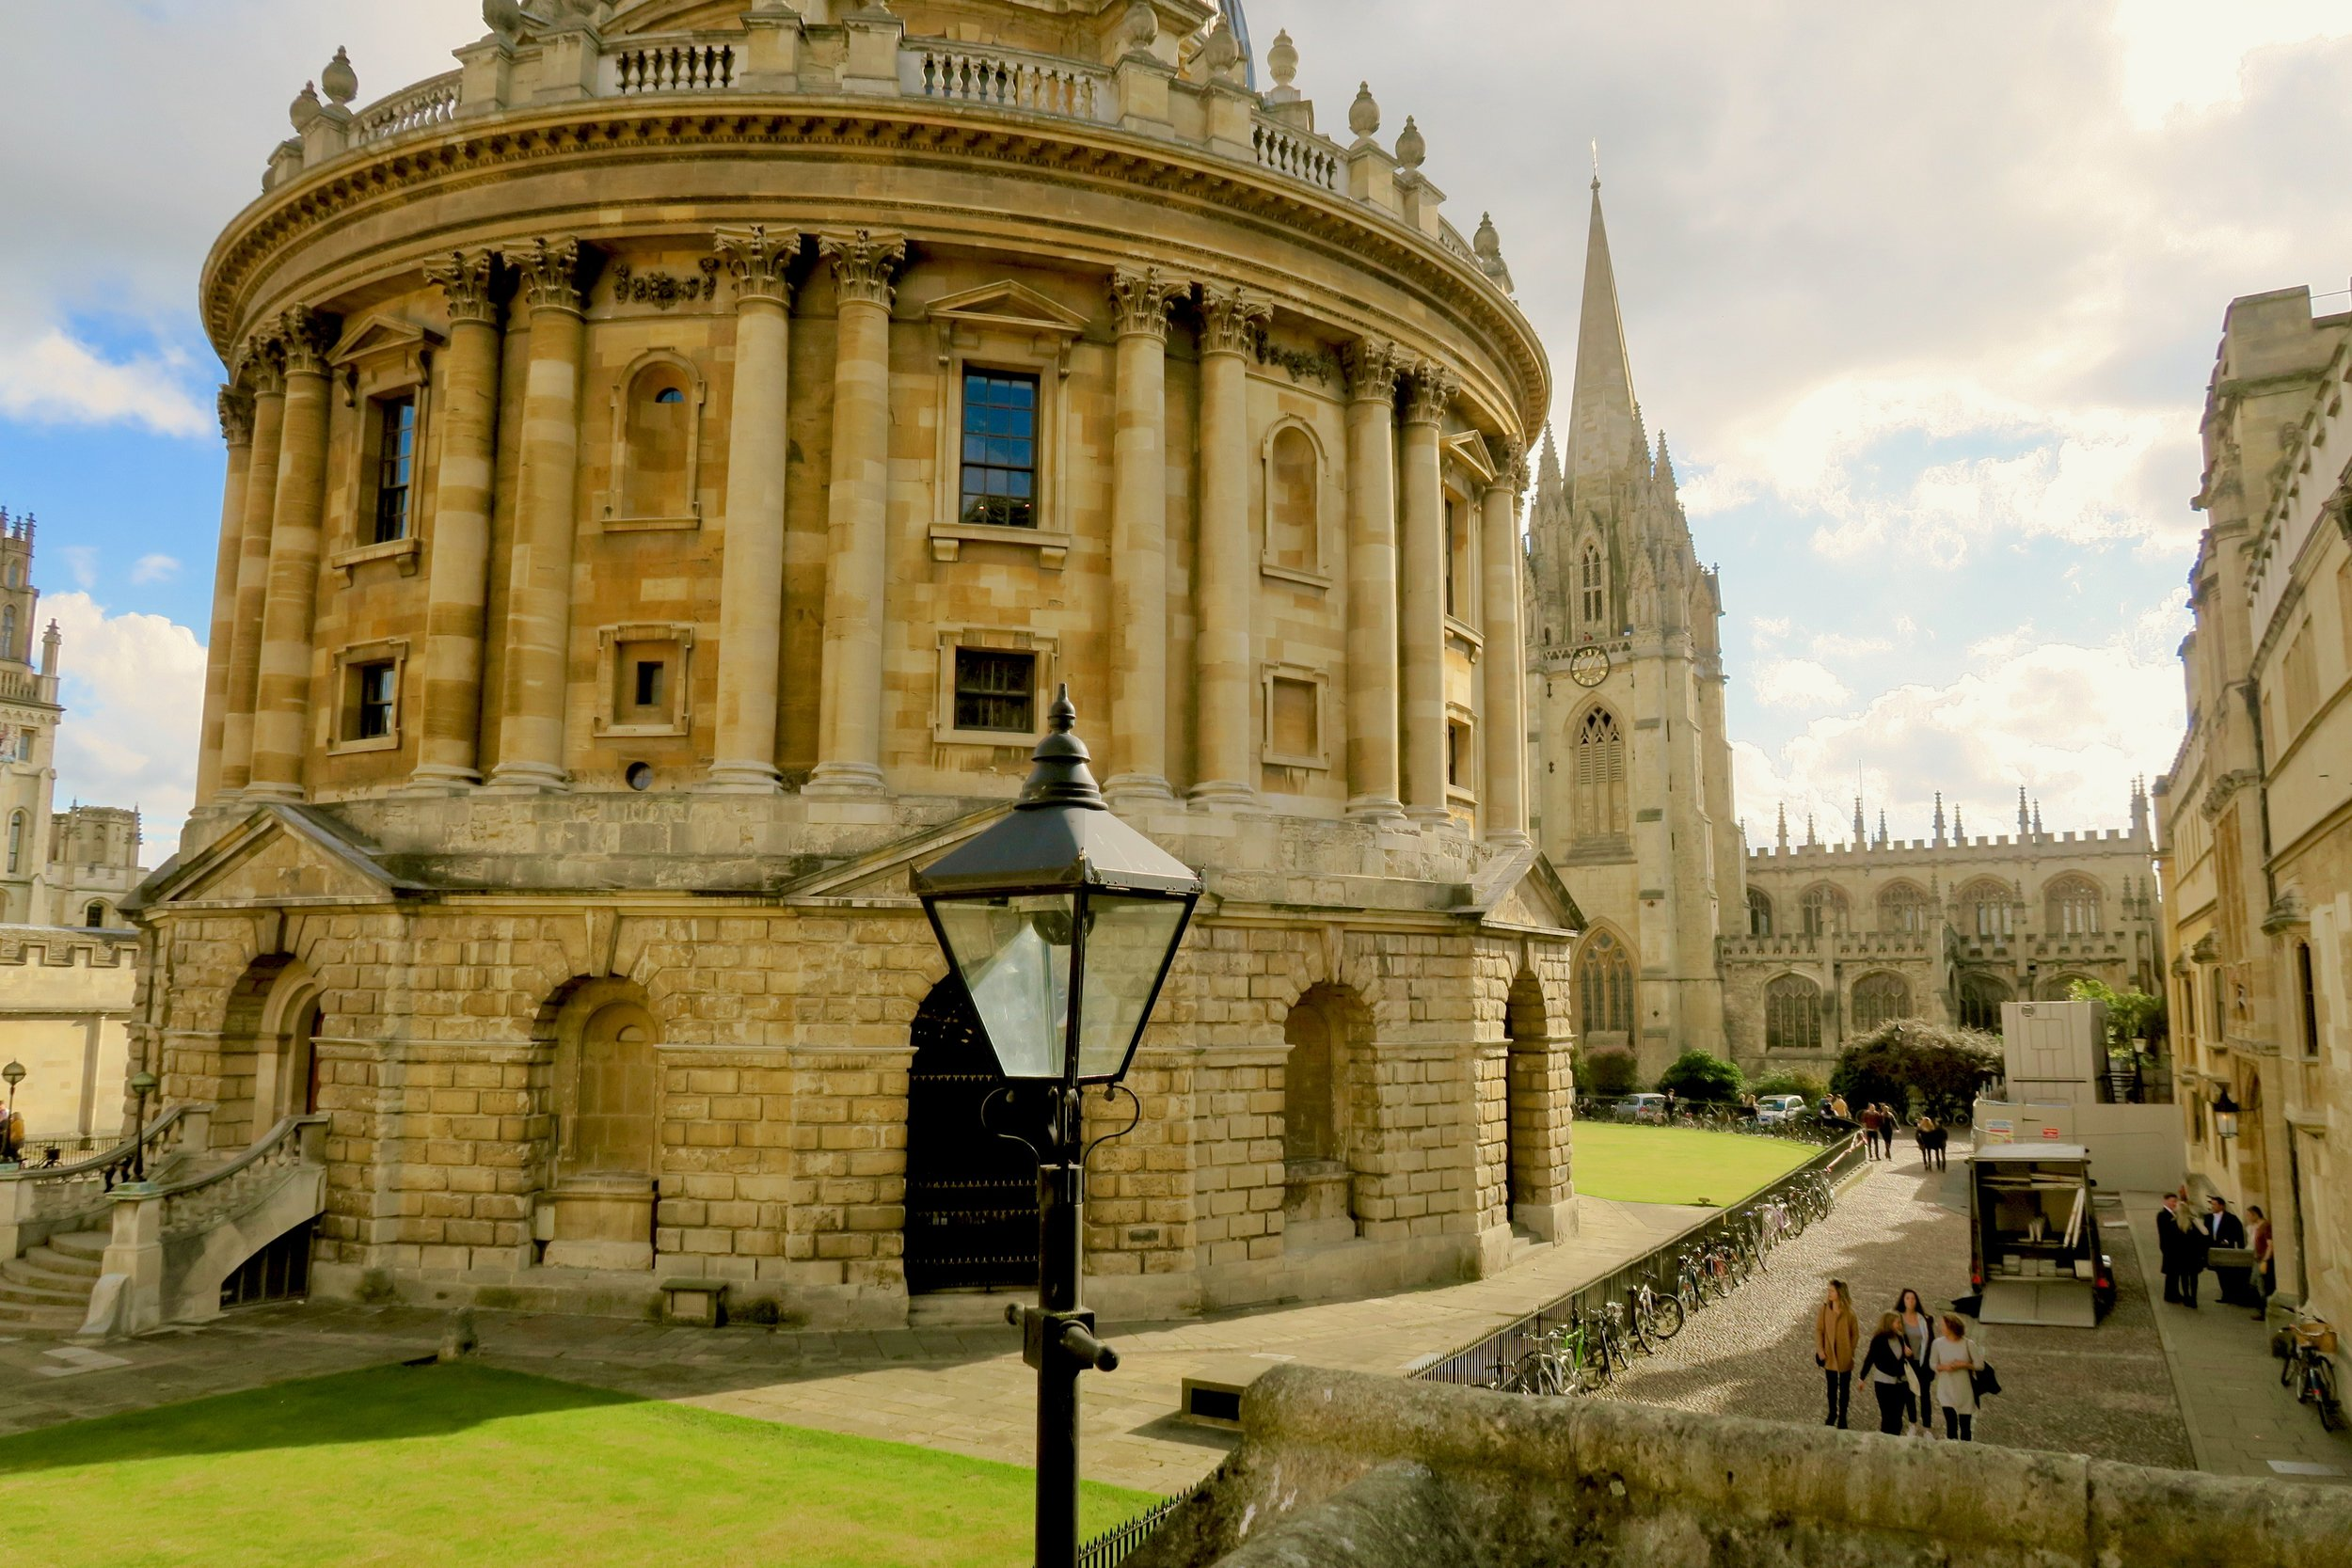 Radcliffe Square, University of Oxford